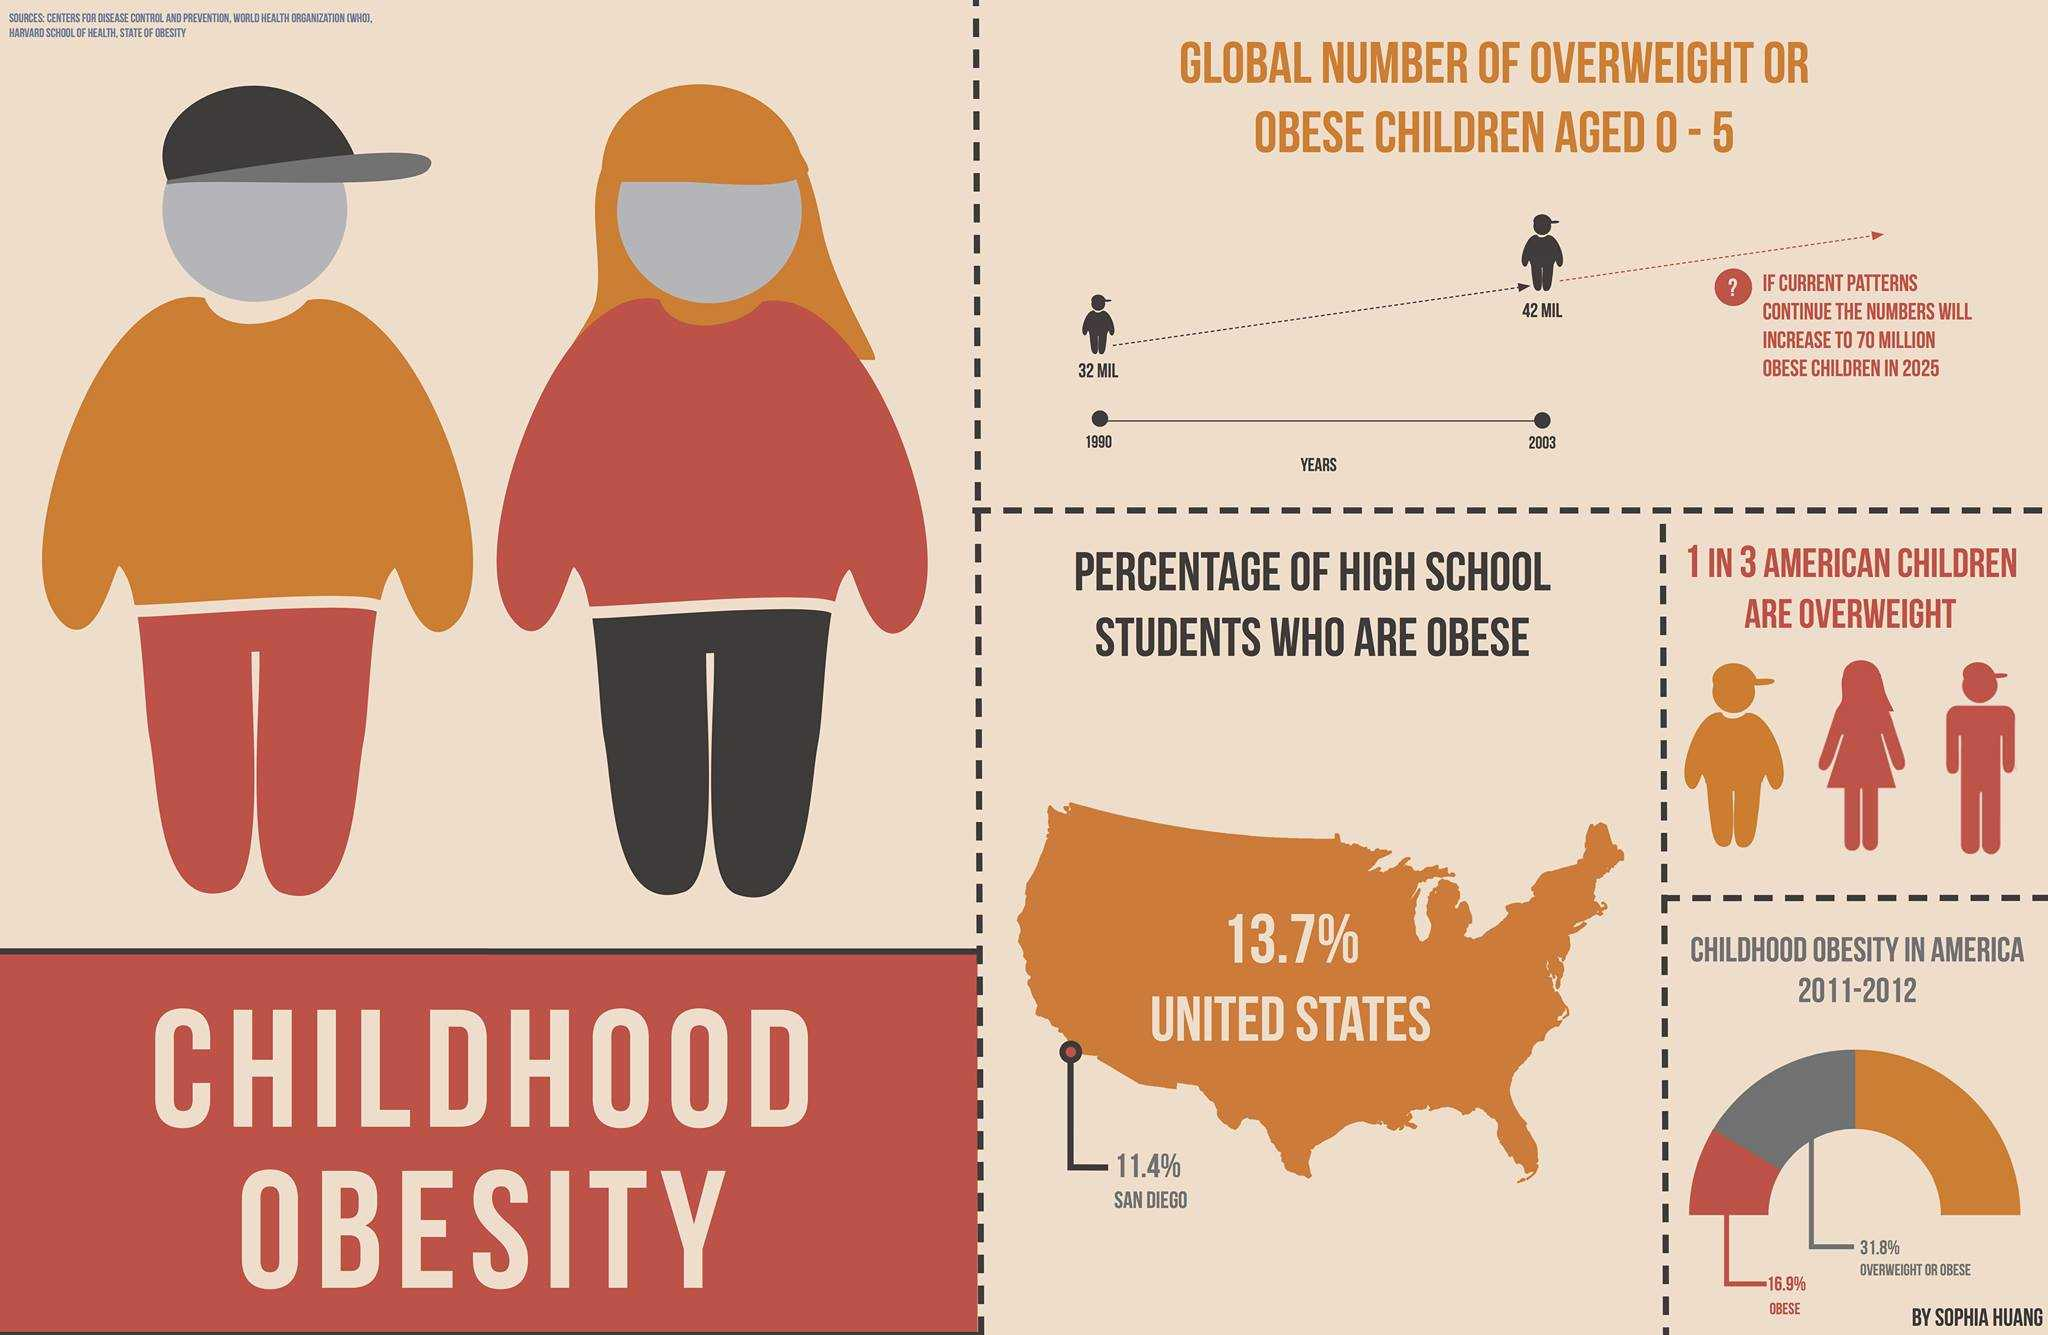 Slowly Chewing Until Satiety Can Prevent Childhood Obesity - UCSD